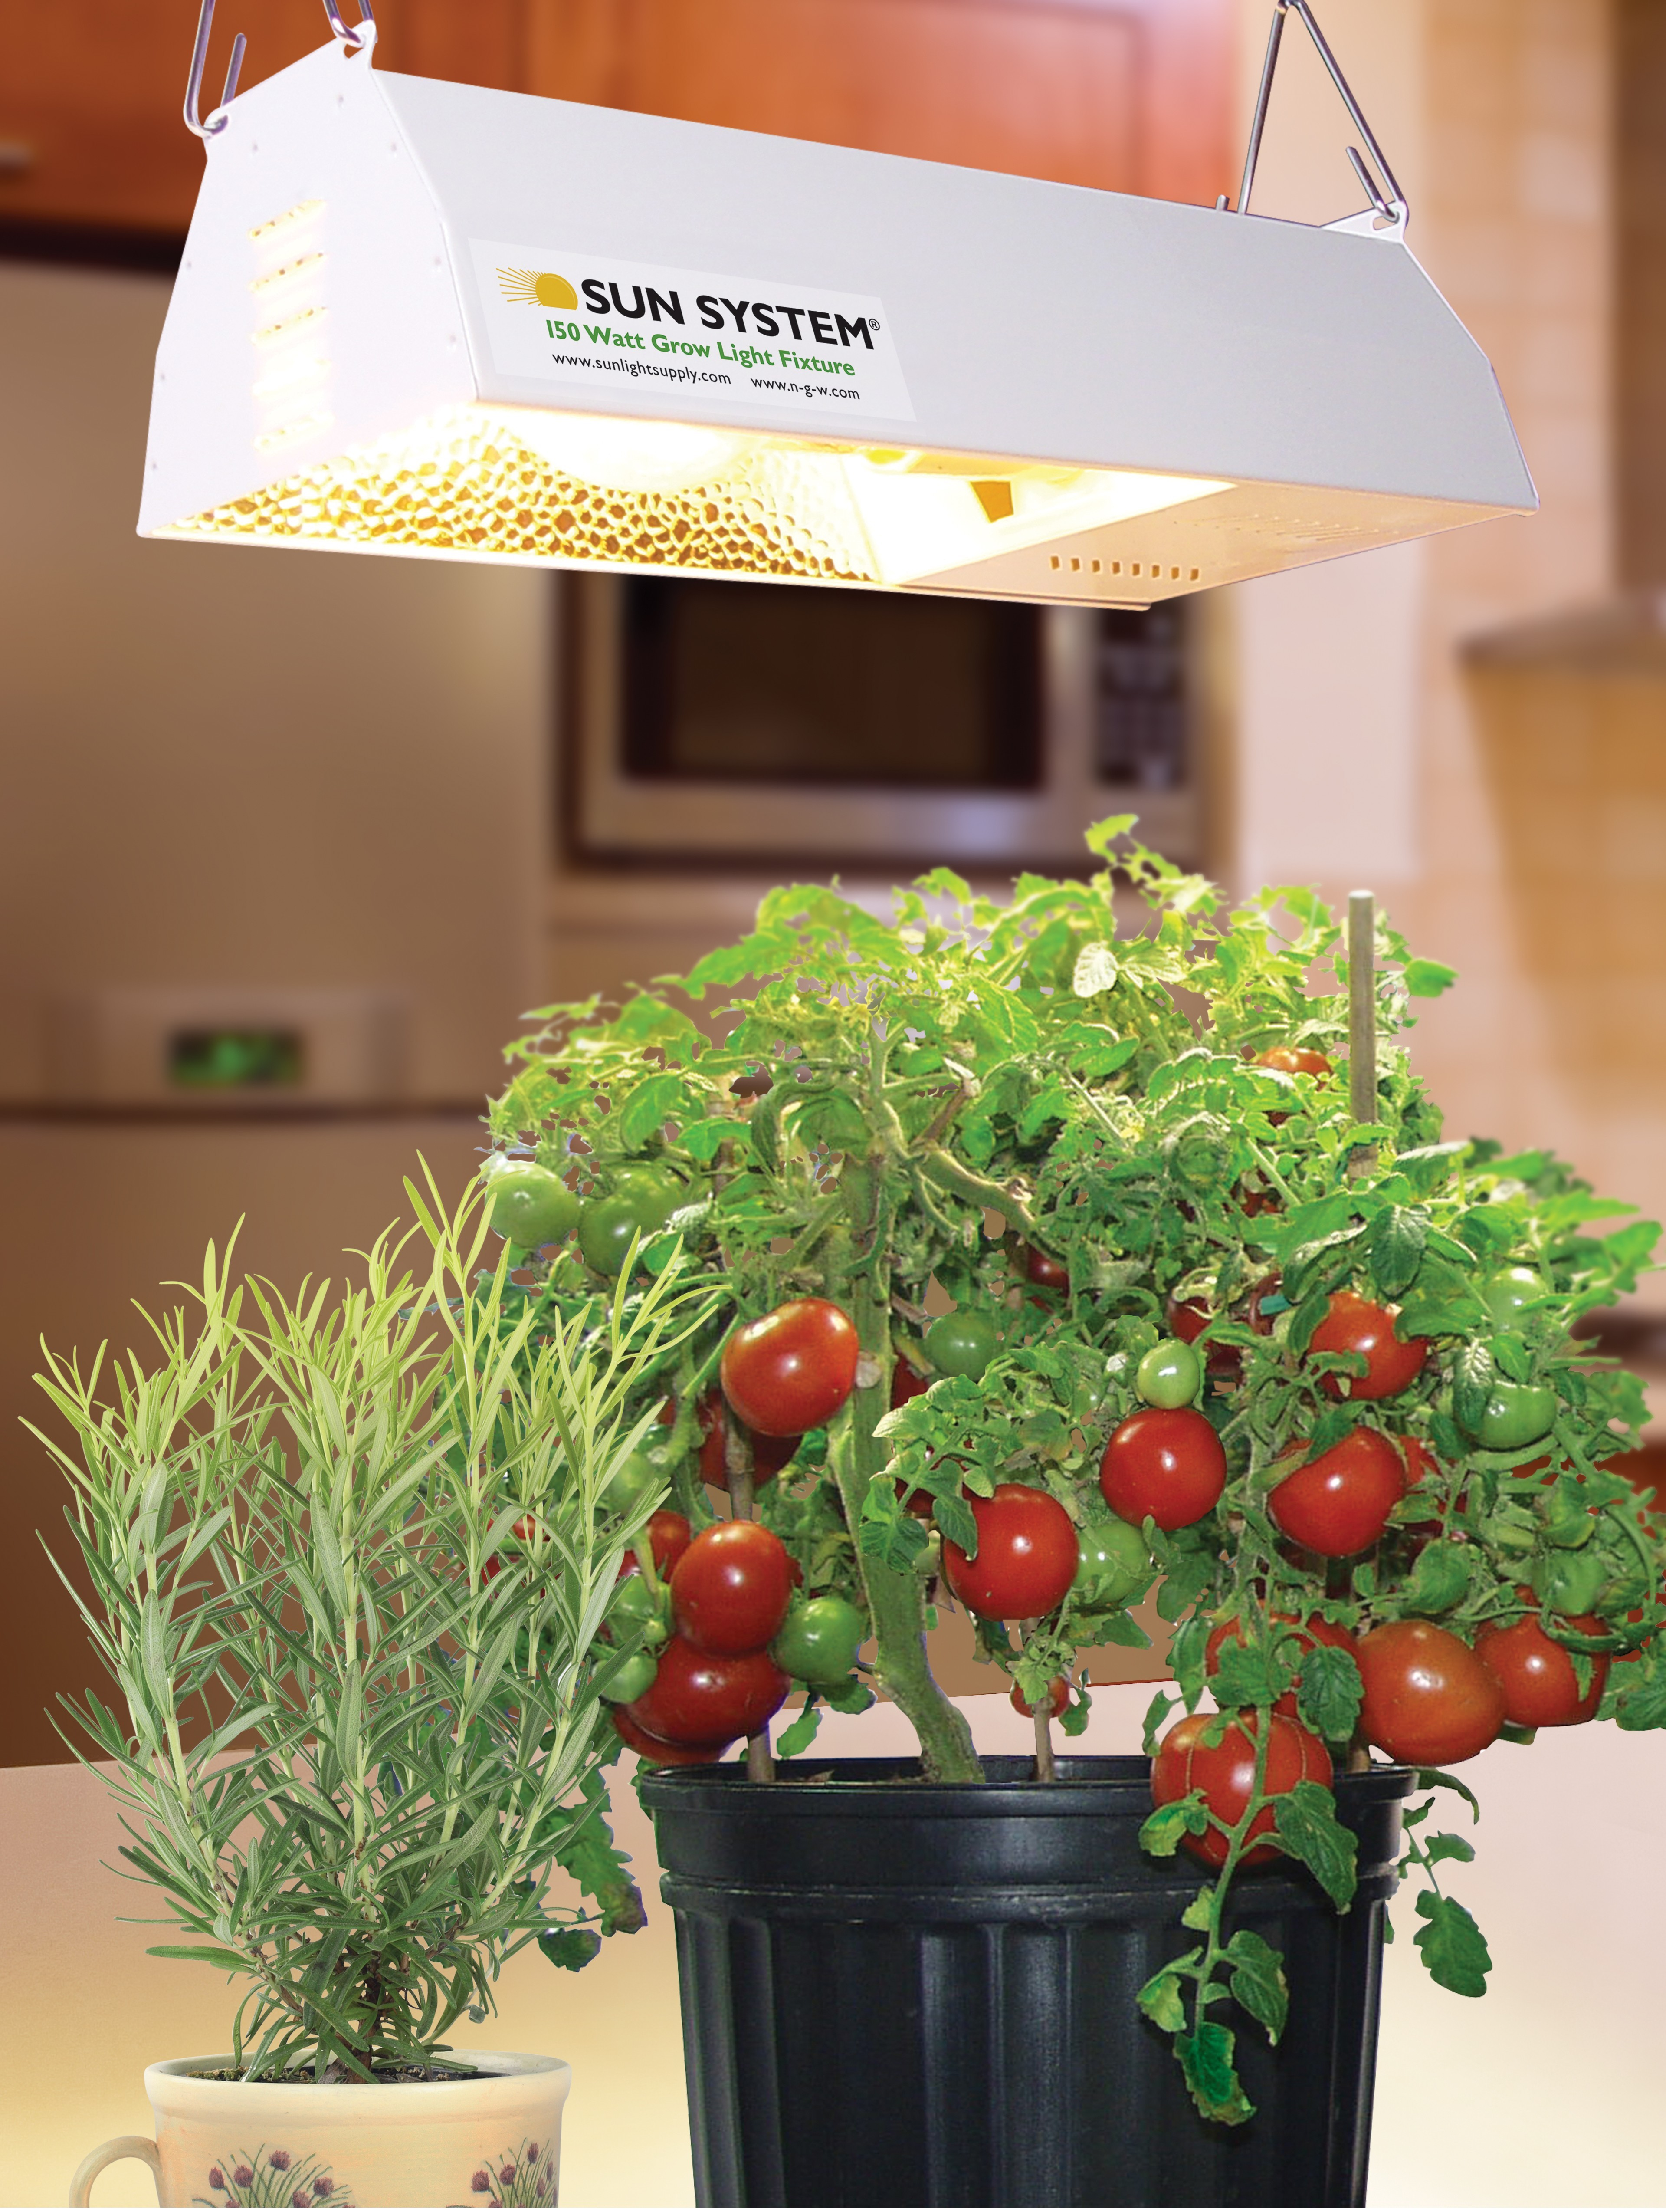 sodium gardening to lights grower use chosen their indoors roses blog hps grow category light a lighting pressure atlantis tips has closet hydroponics rose high picture